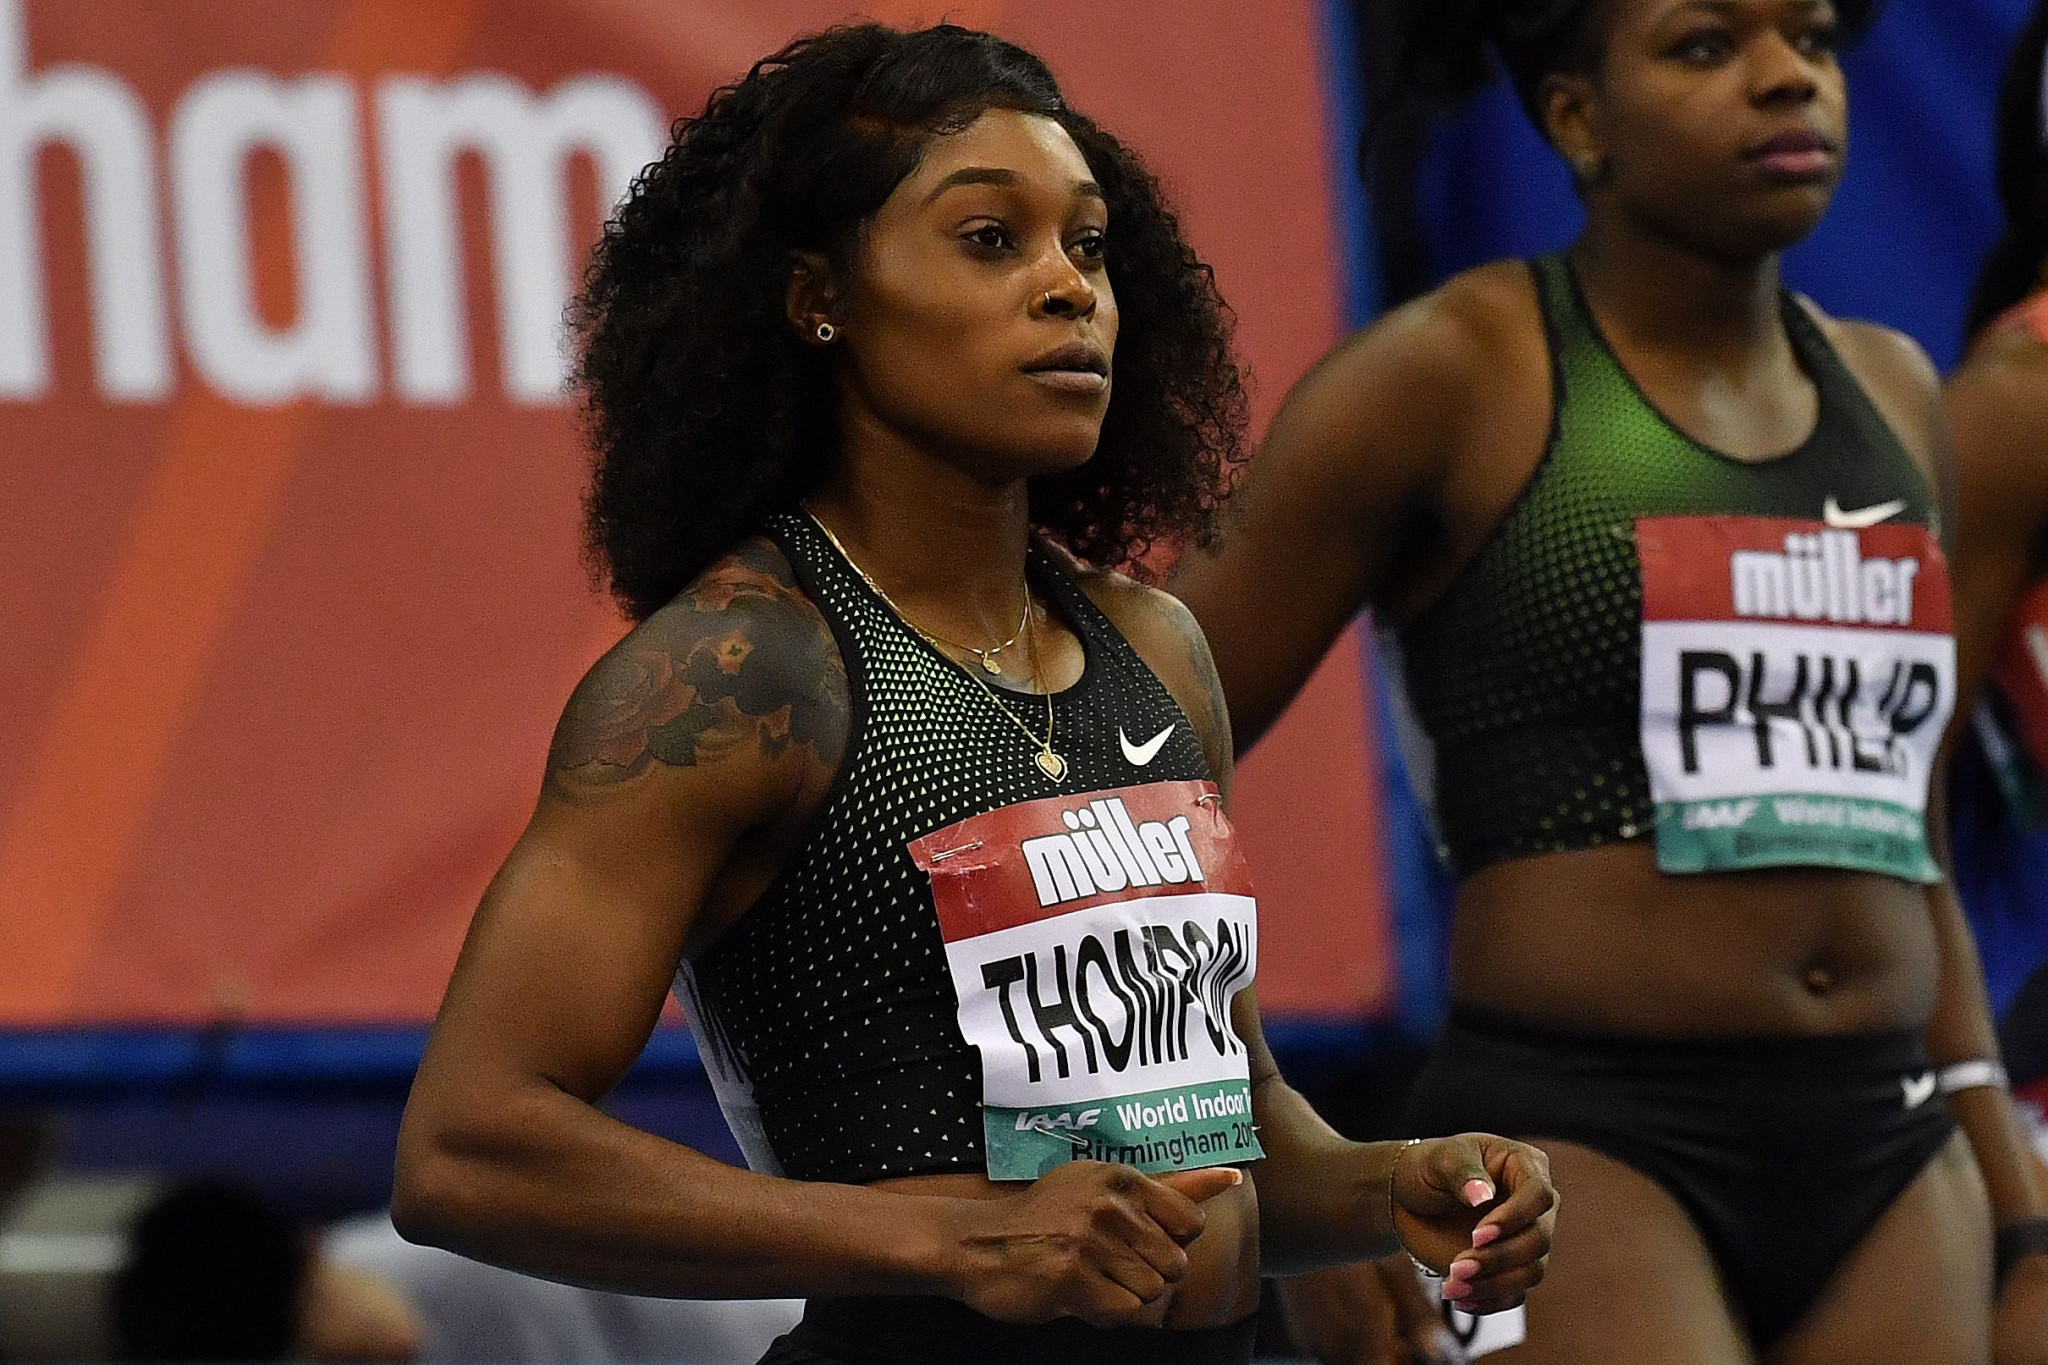 Jamaica's Olympic 100 and 200 metres champion Elaine Thompson faces a strong challenge over the longer distance at tomorrow's IAAF Diamond League meeting in Stockholm ©Getty Images